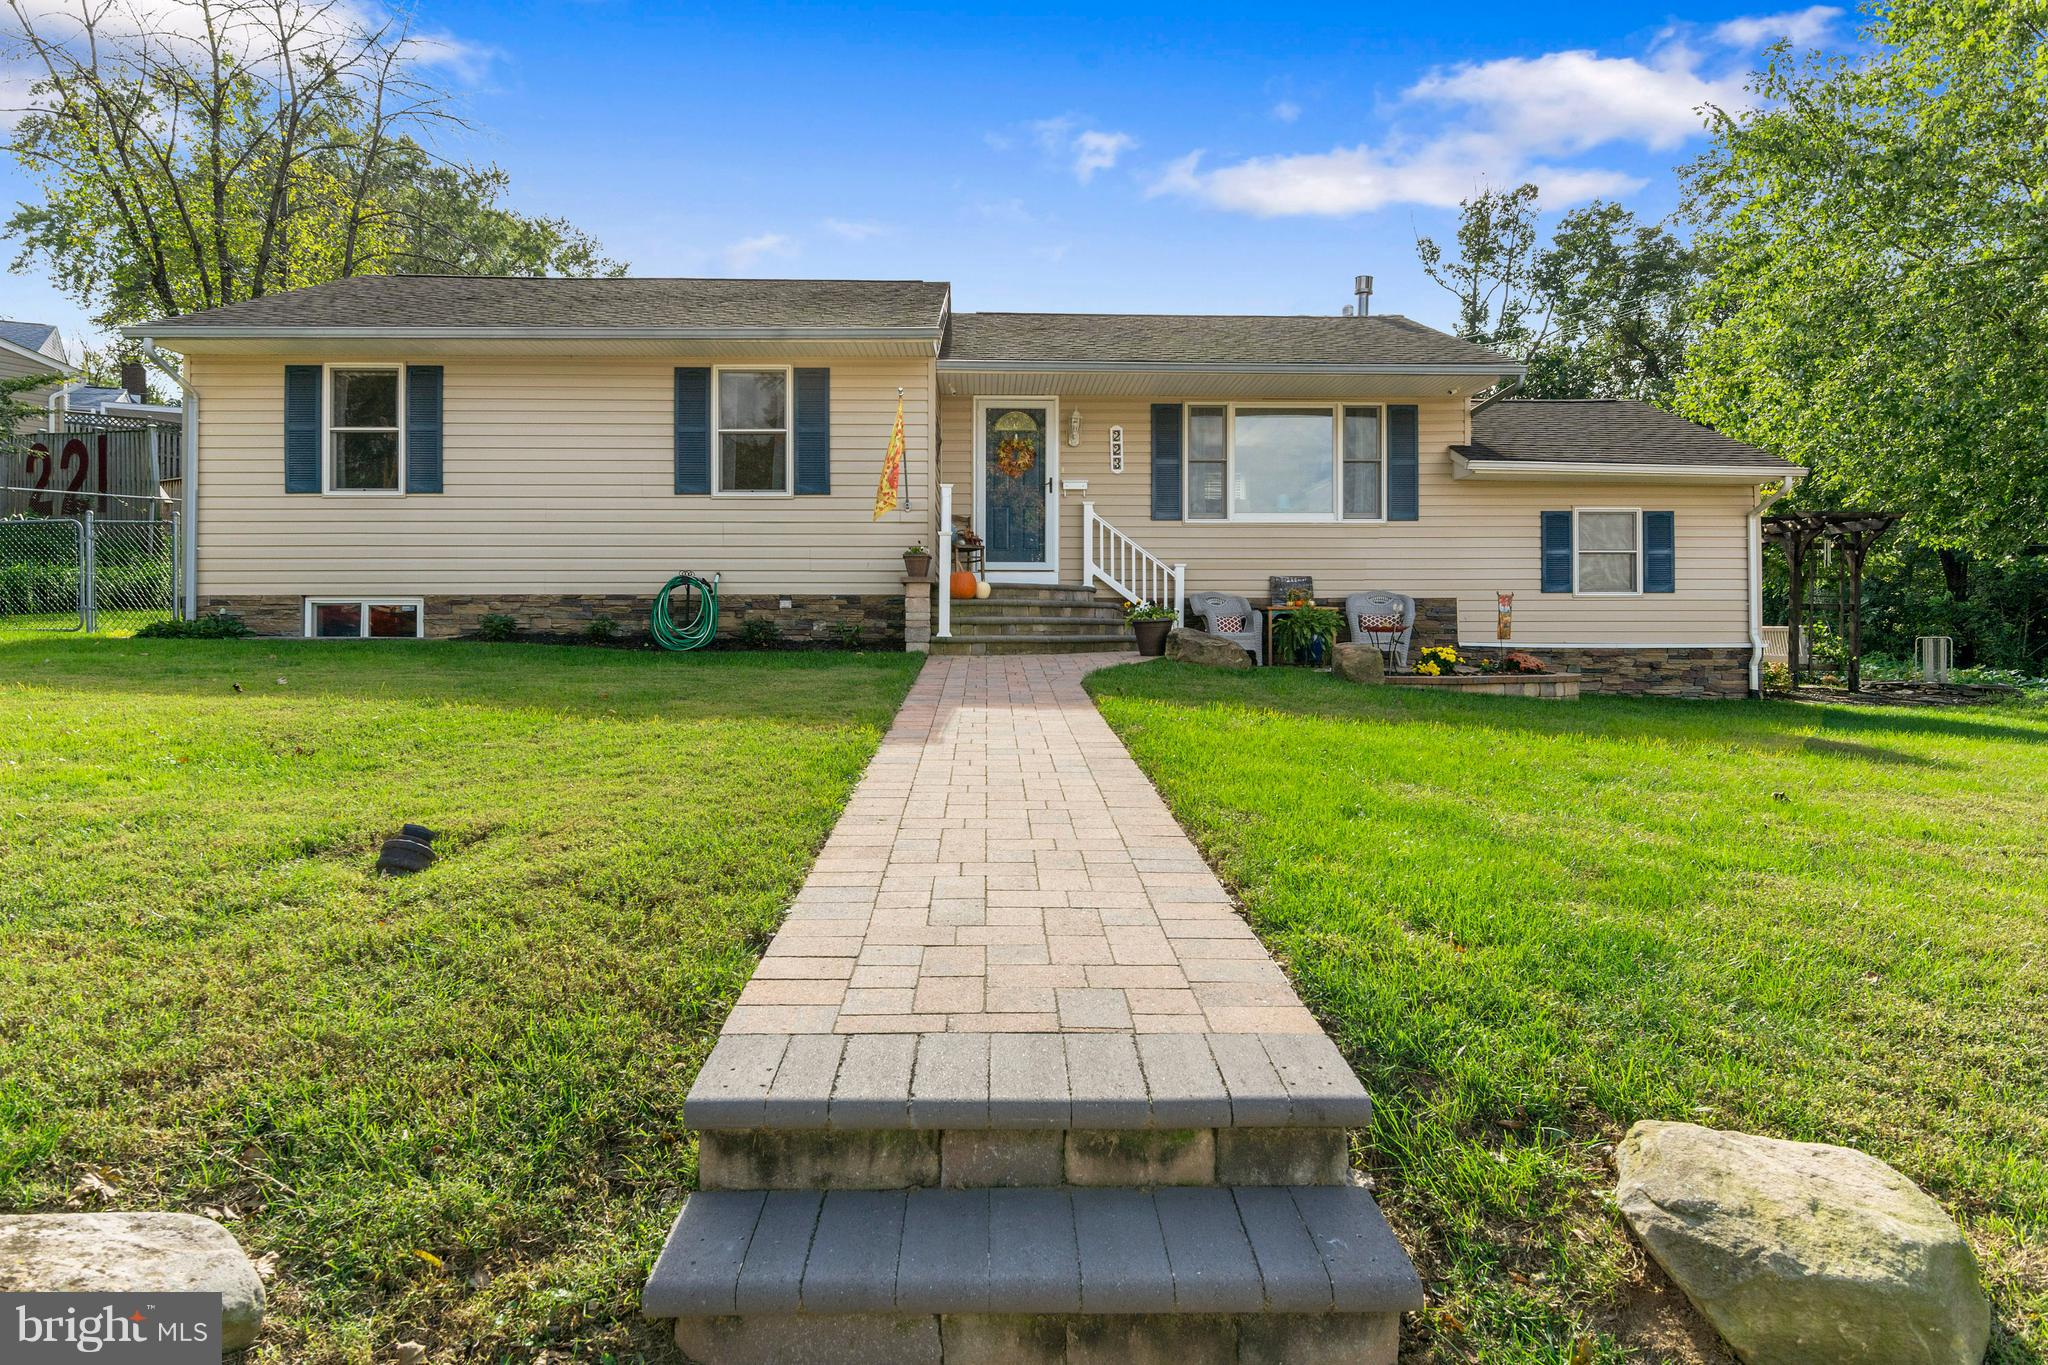 Check out this updated rancher! This home features a generous master bedroom with a TRUE walk in clo